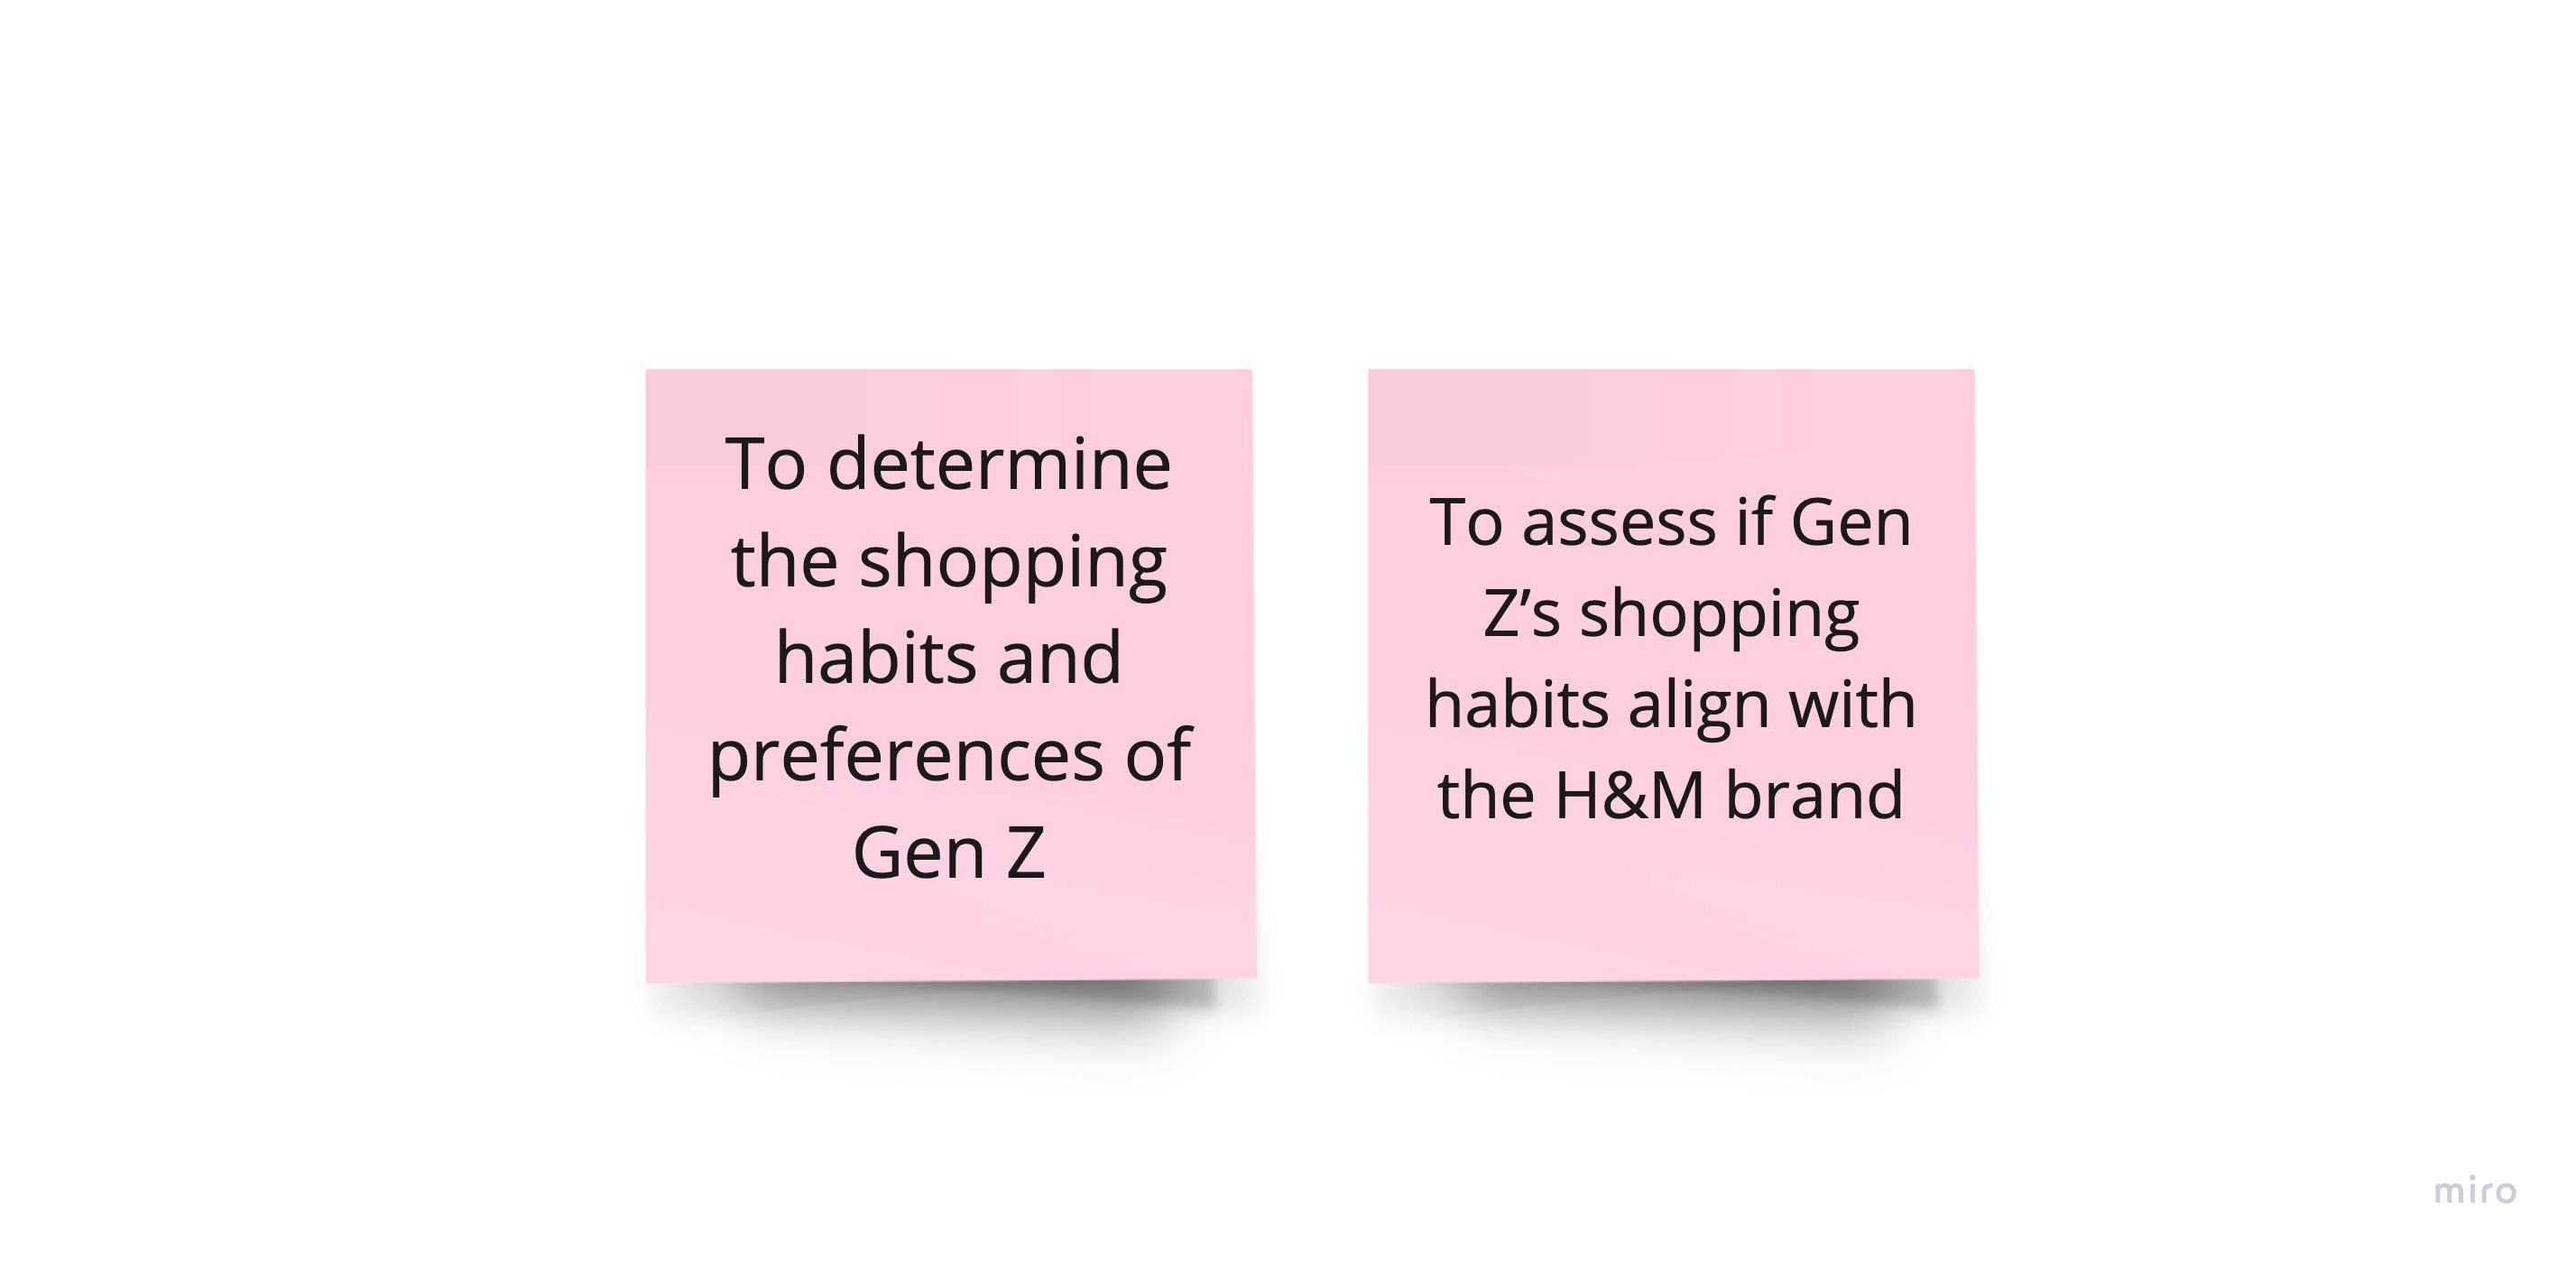 Improving H&M Shopping Experience